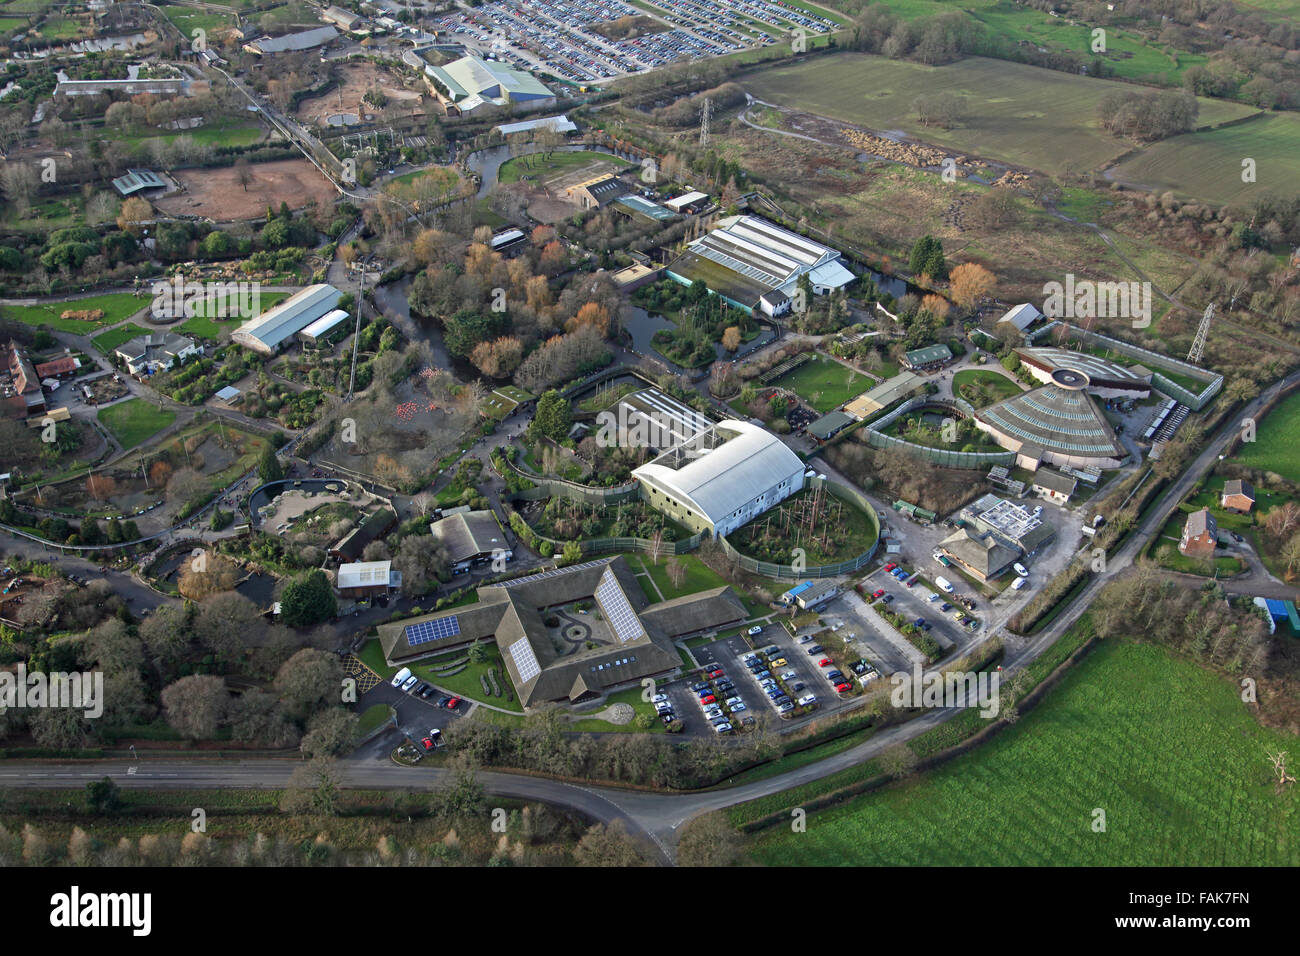 aerial view of Chester Zoo, Cheshire, UK - Stock Image